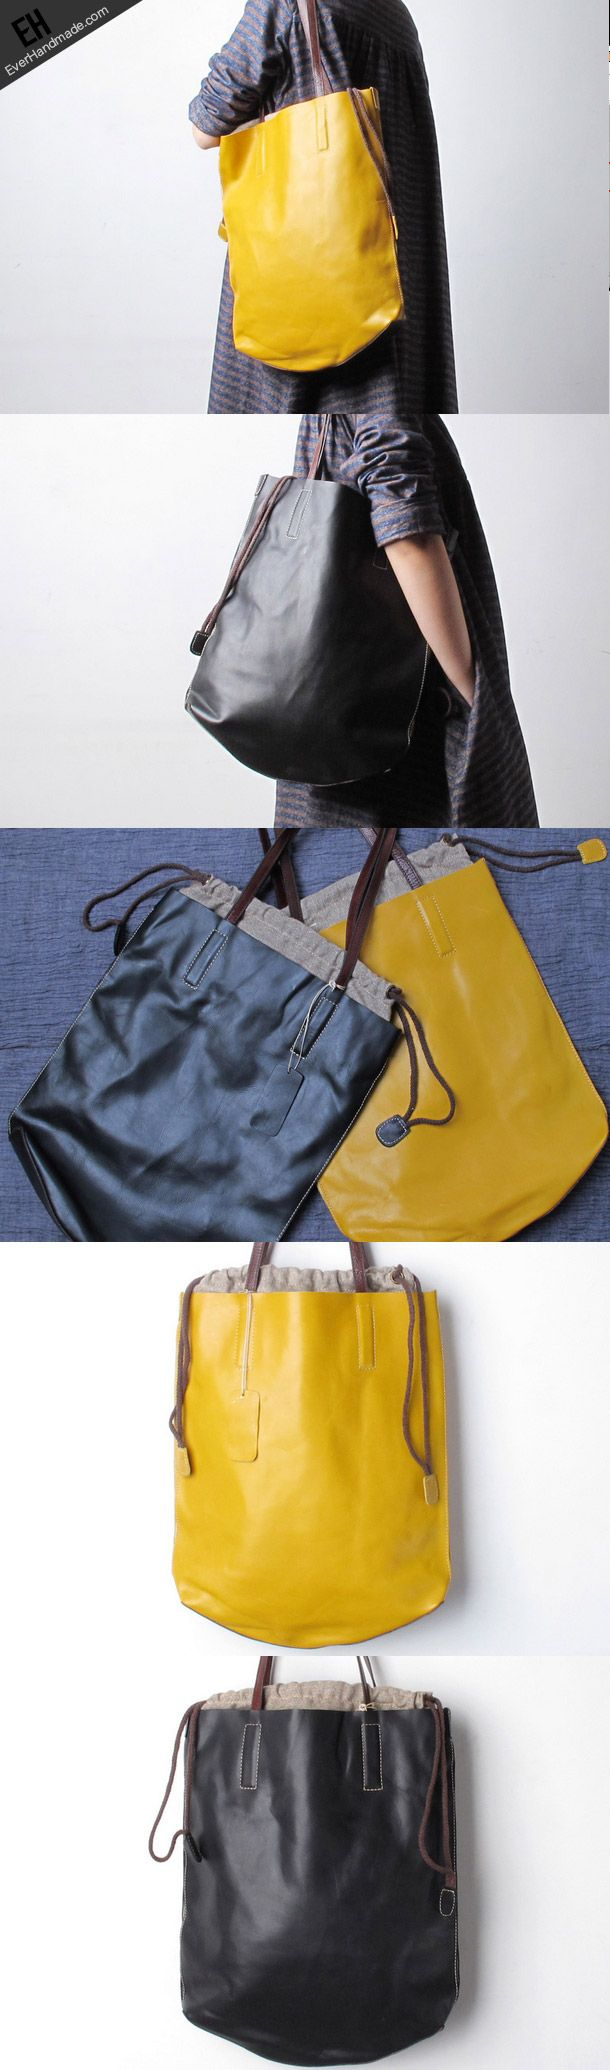 Yellow Black Handmade Leather Women Tote Bags Handmade Handbags & Accessories - amzn.to/2ij5DXx Handmade Handbags & Accessories - http://amzn.to/2iLR27v